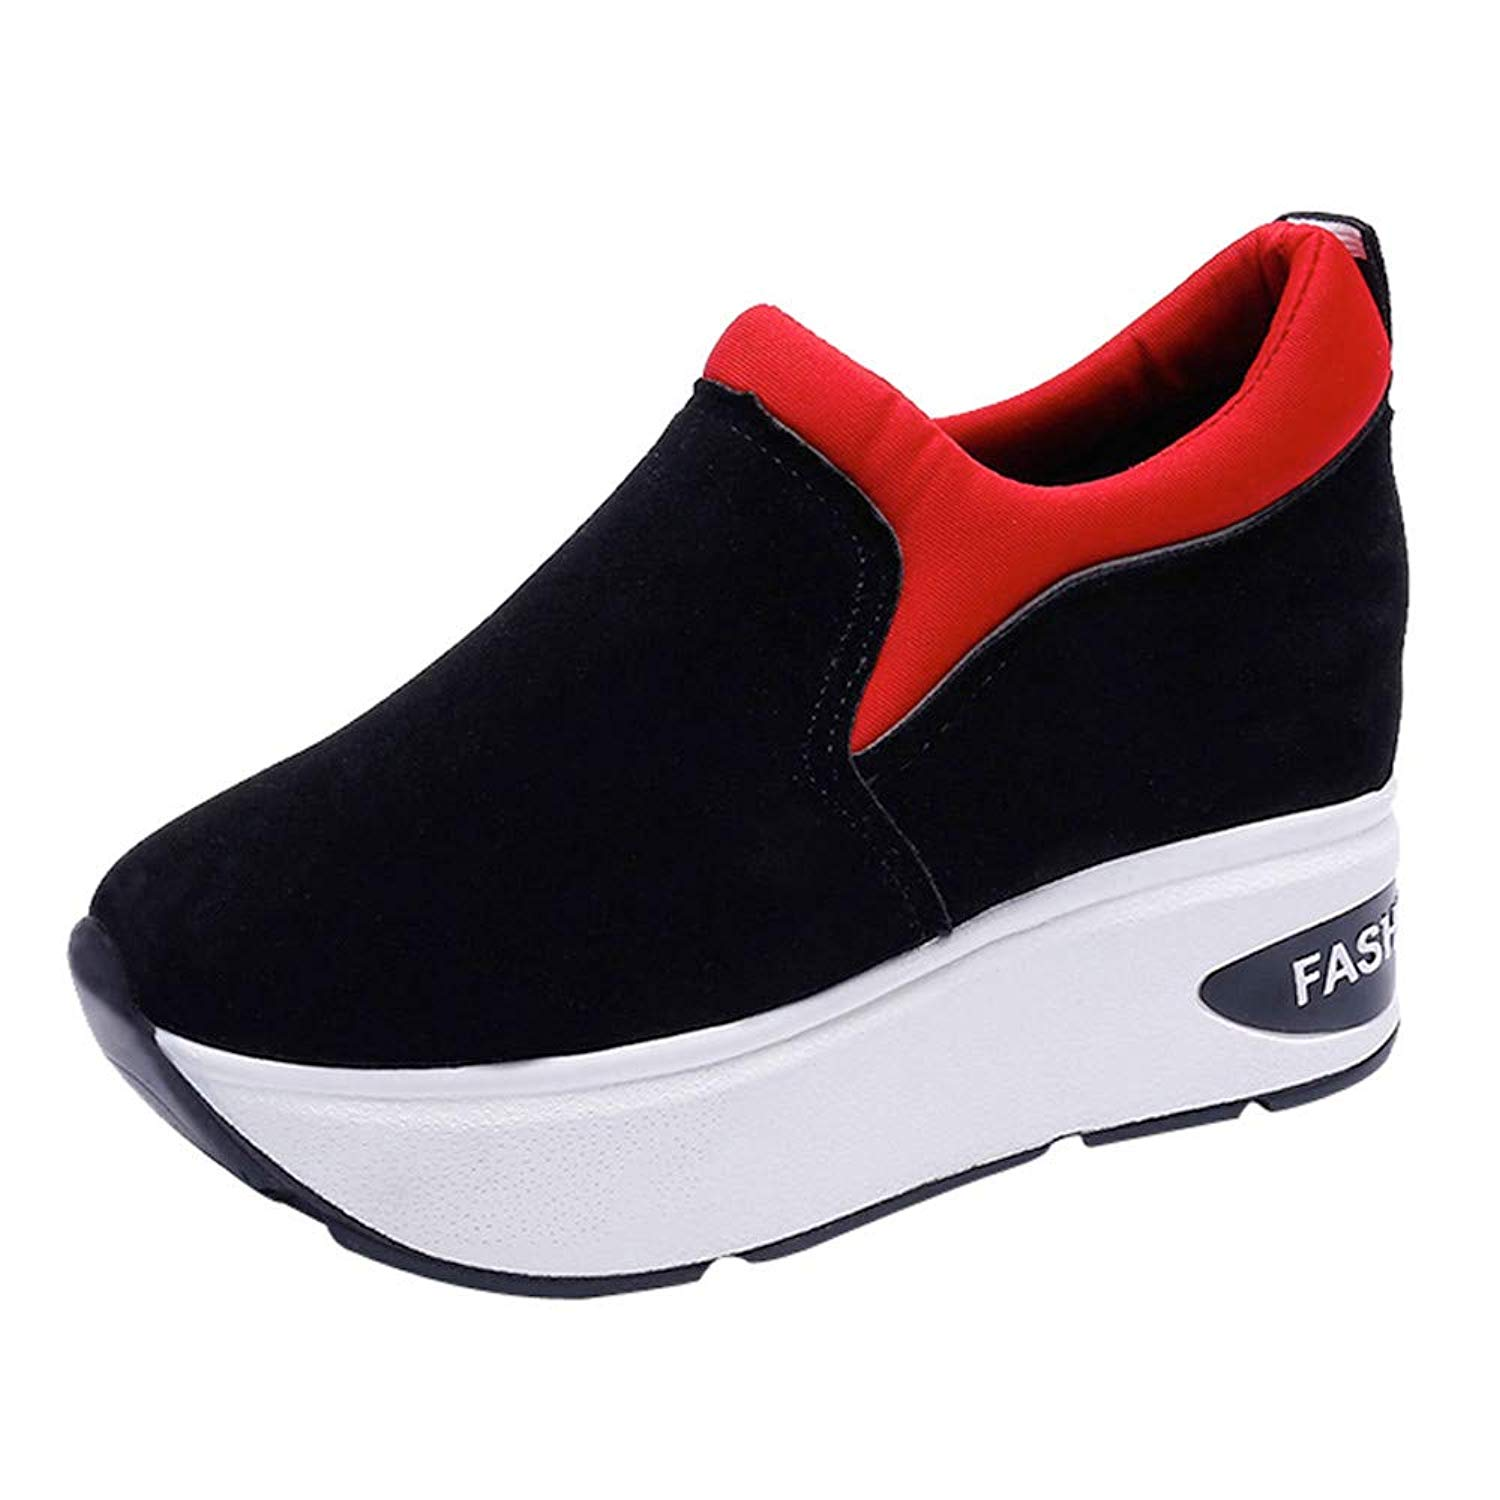 Clearance Womens Girls Wedges Shoes,Casual Suede Thick-Soled Increase Platform Shake Sneaker 5.5-7.5